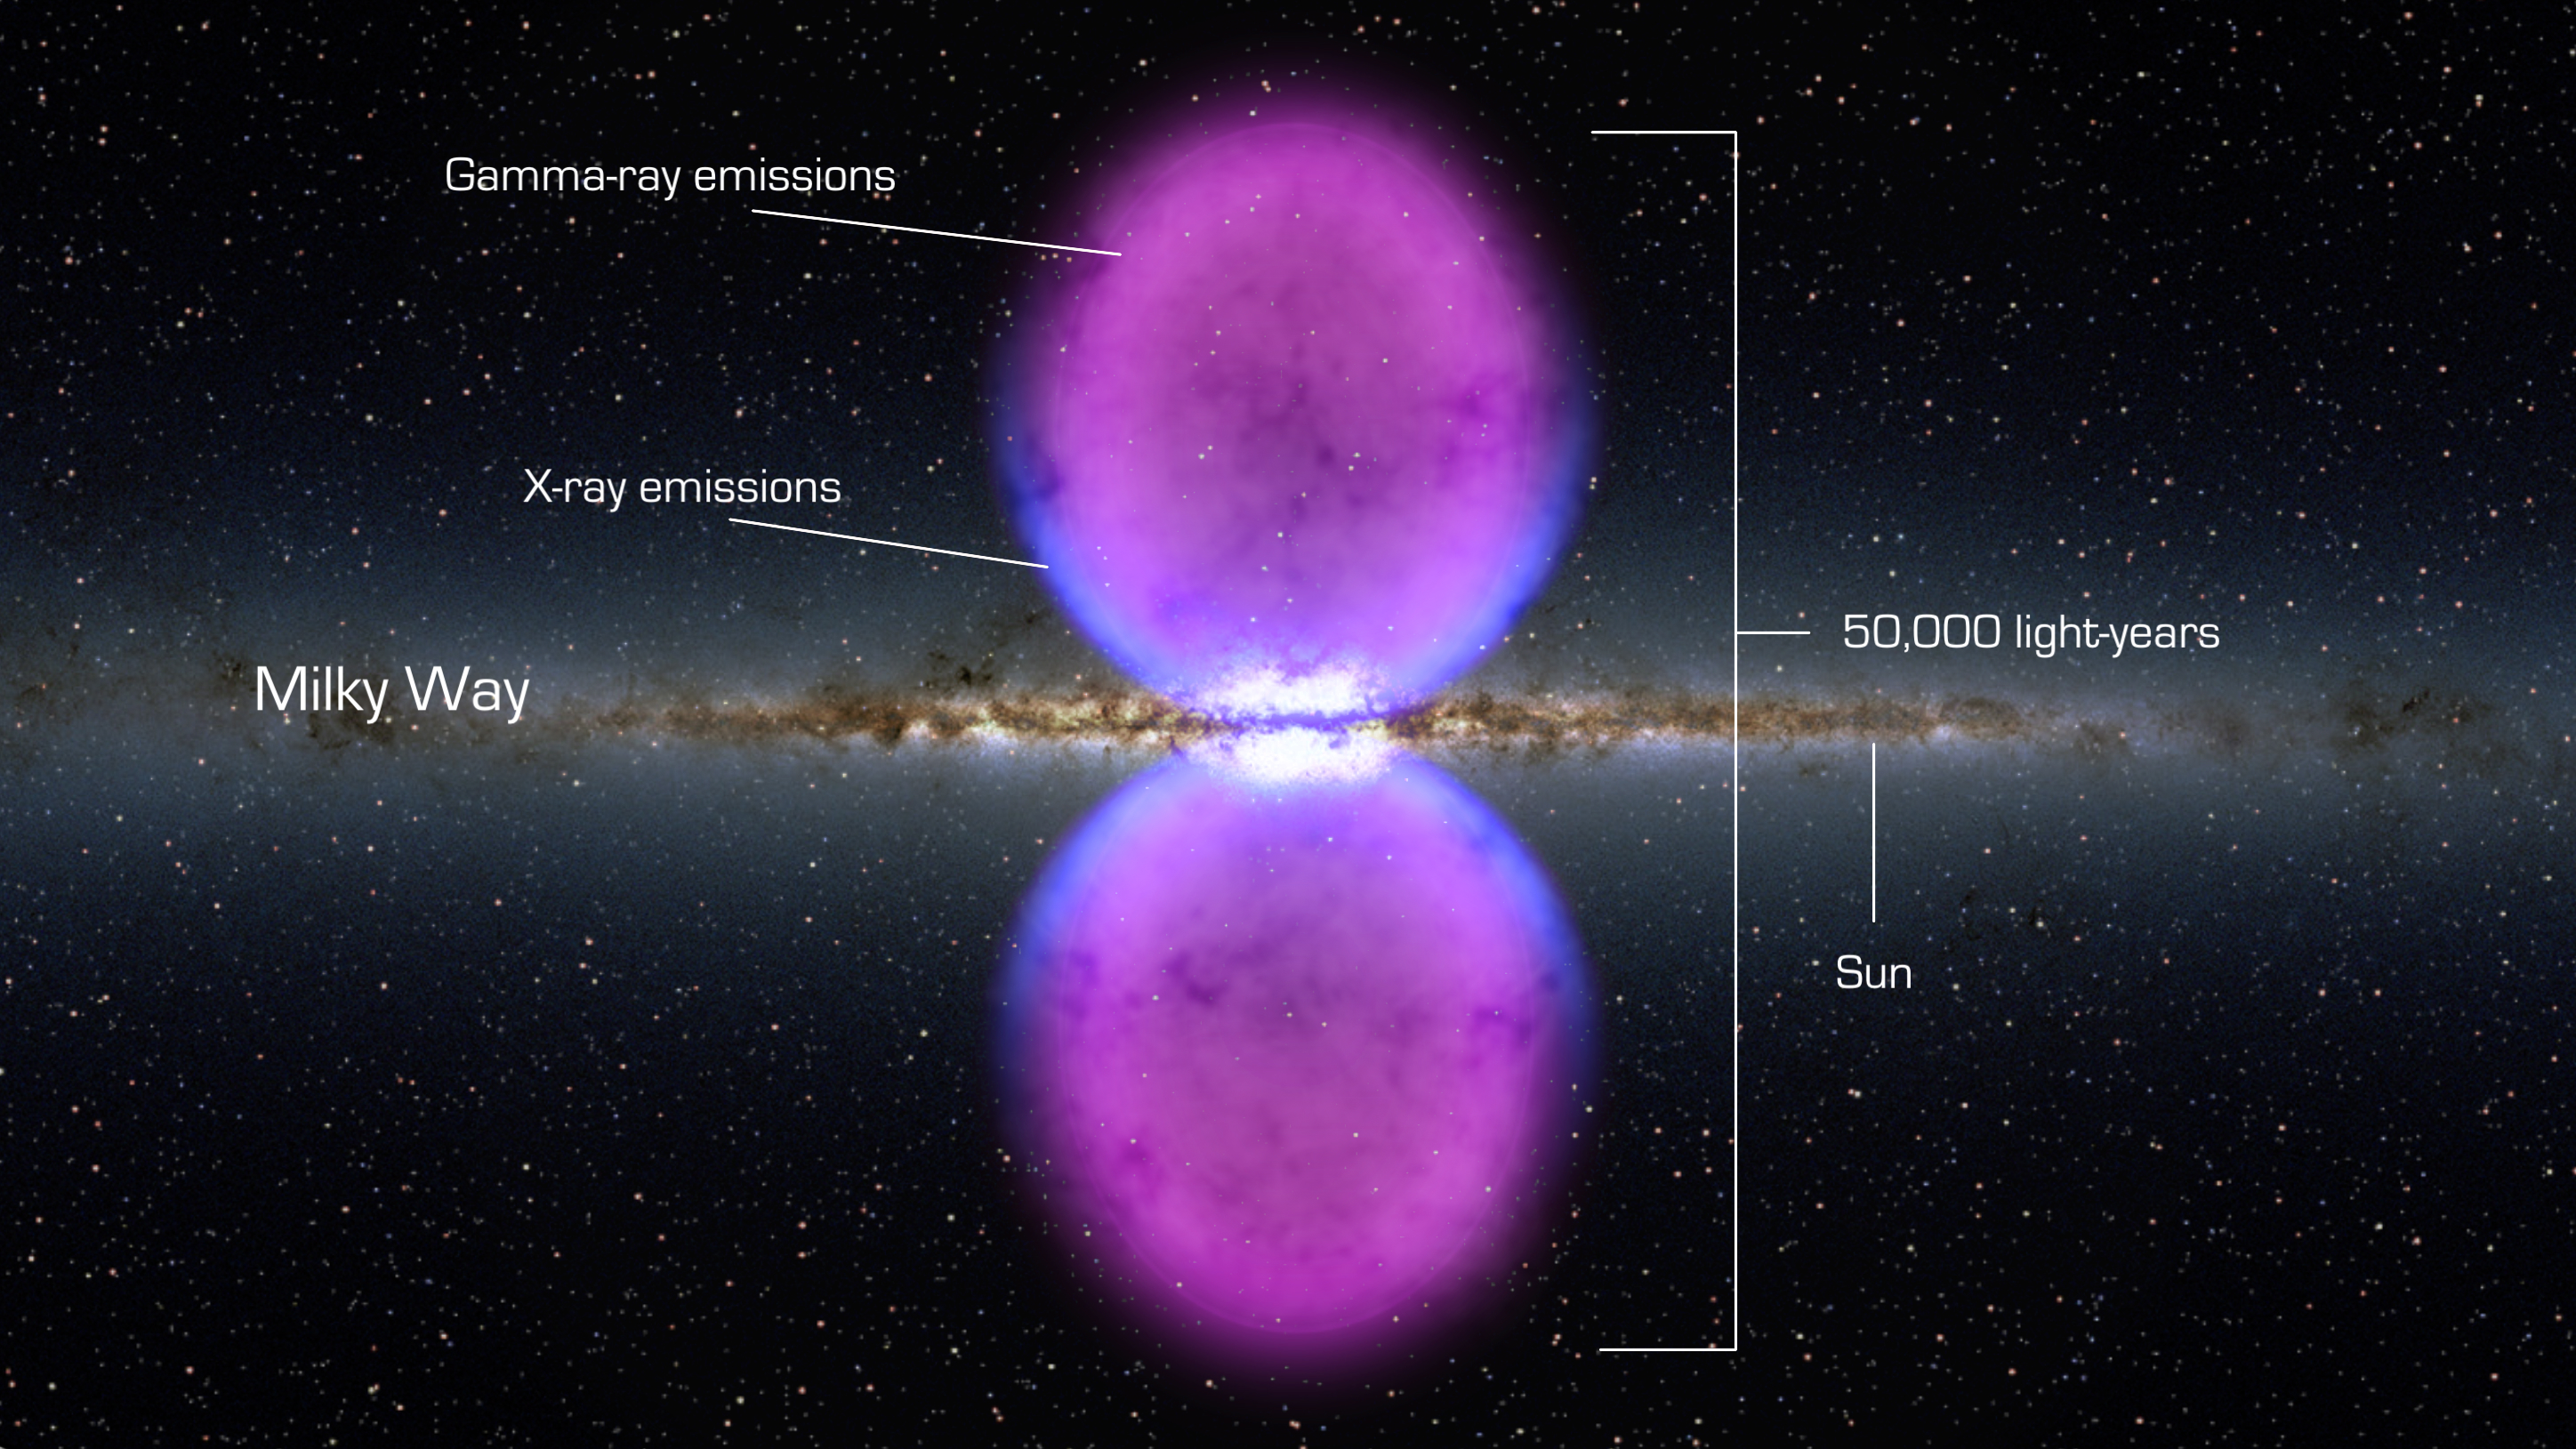 From end to end, the newly discovered gamma-ray bubbles extend 50,000 light-years, or roughly half of the Milky Way's diameter, as shown in this illustration. Hints of the bubbles' edges were first observed in X-rays (blue) by ROSAT, a Germany-led mission operating in the 1990s. The gamma rays mapped by Fermi (magenta) extend much farther from the galaxy's plane.